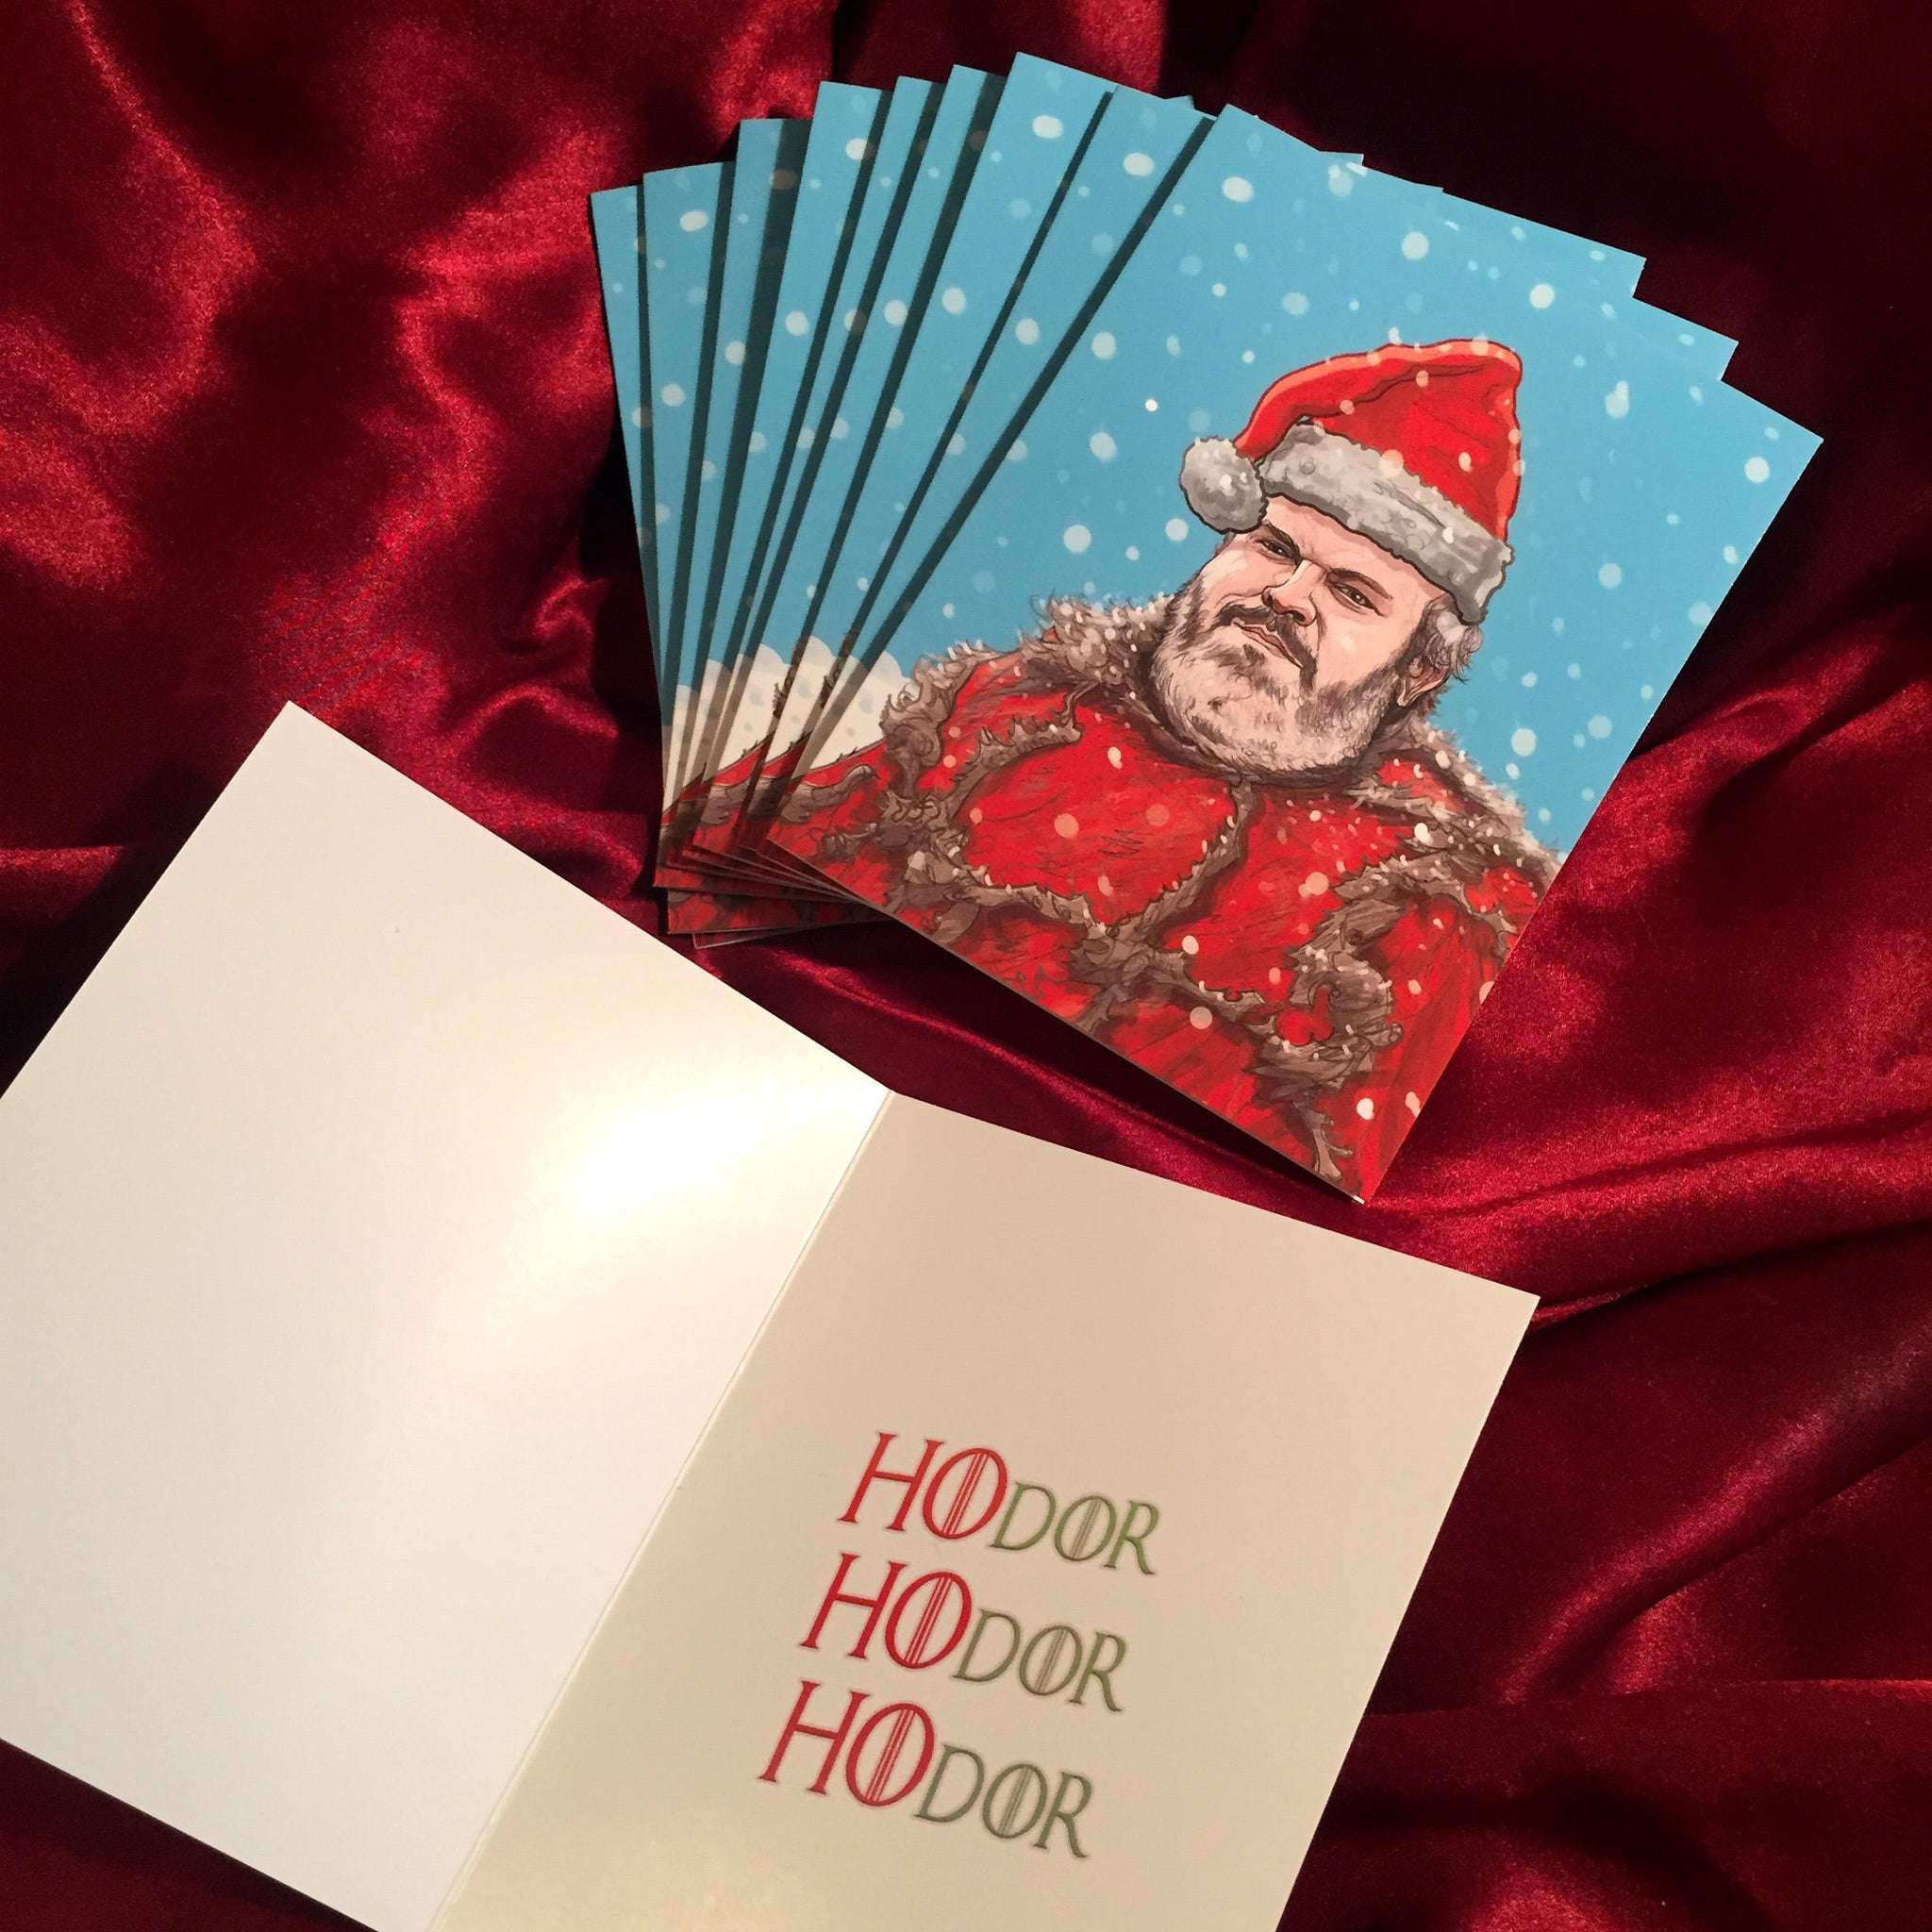 10 PACK HODOR Christmas Game of Thrones Cards!